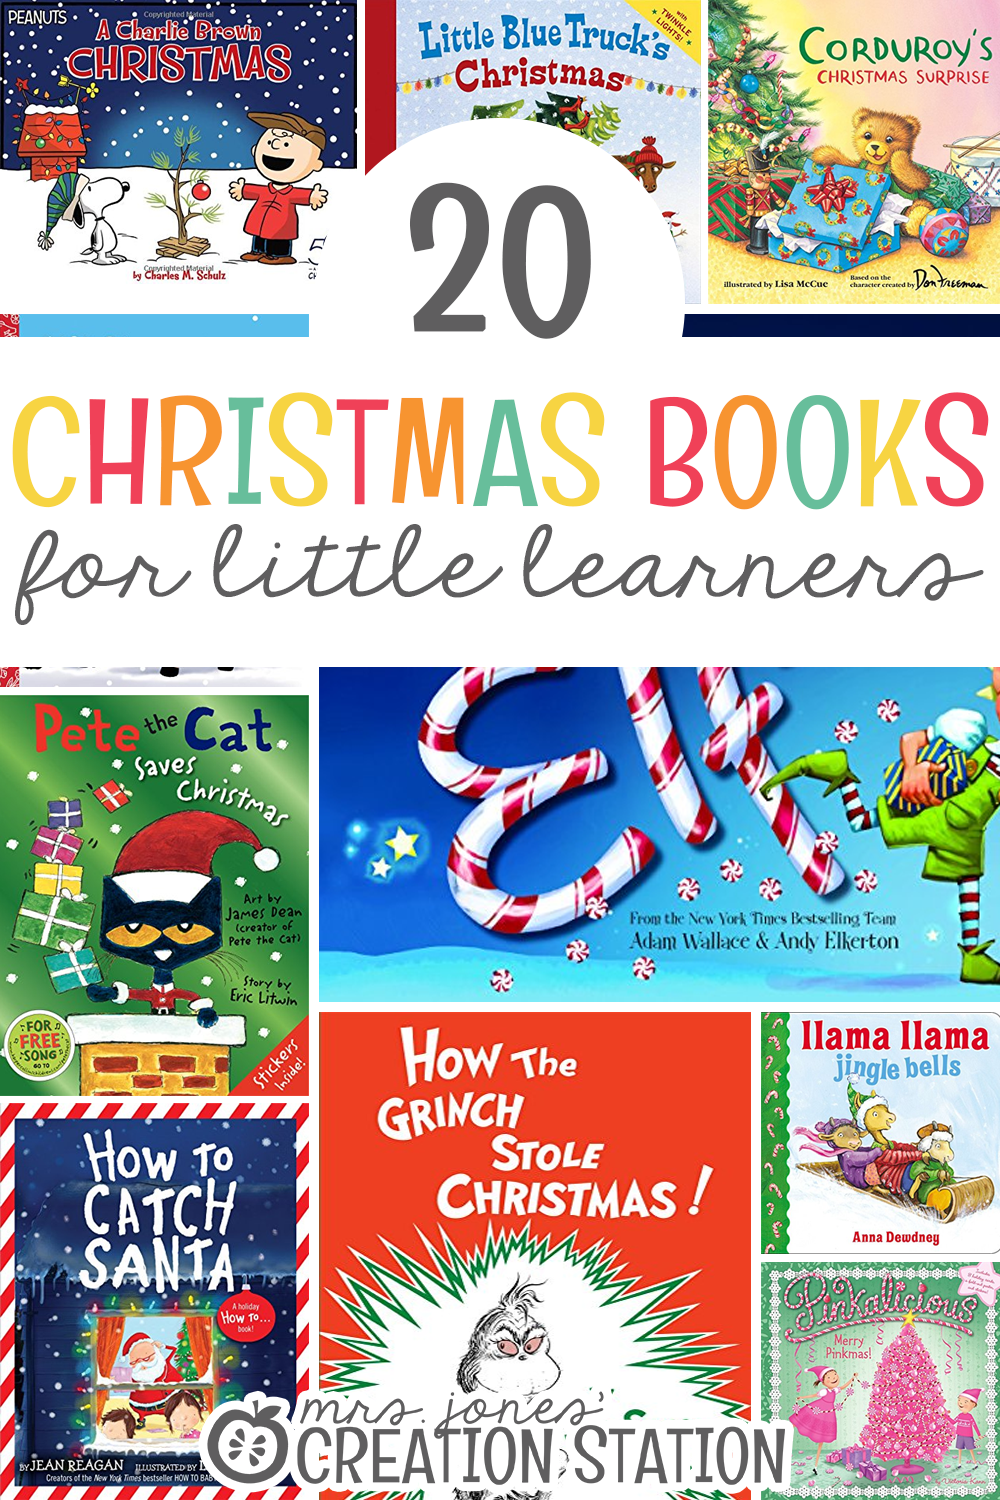 Twenty Christmas Books List for Little Learners- Mrs. Jones Creation Station